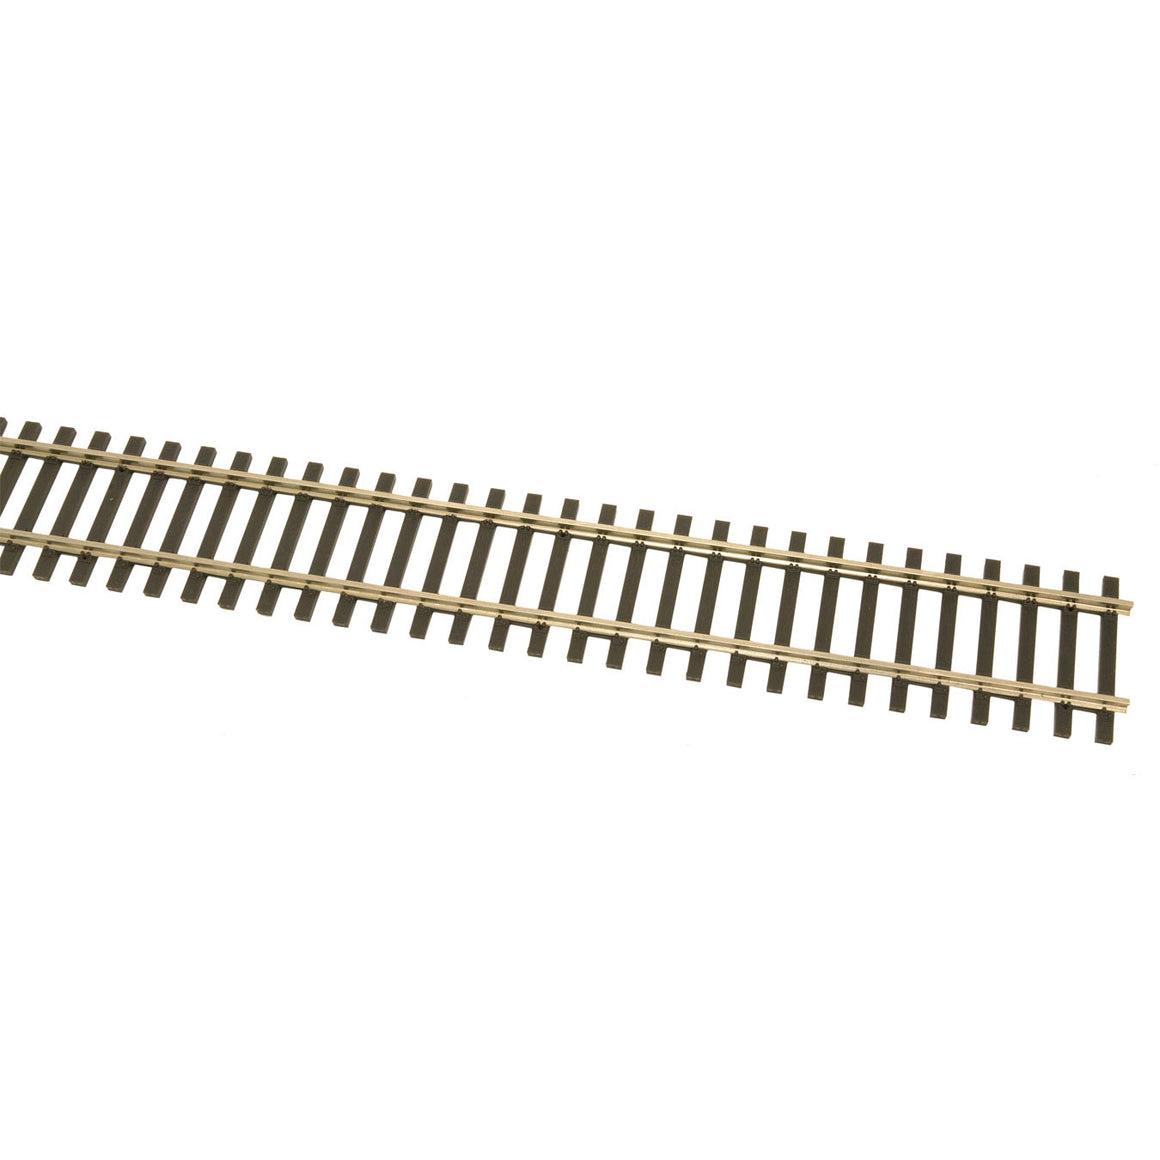 HO Scale: Code 100 Flex Track with Wood Ties - 5 Pack